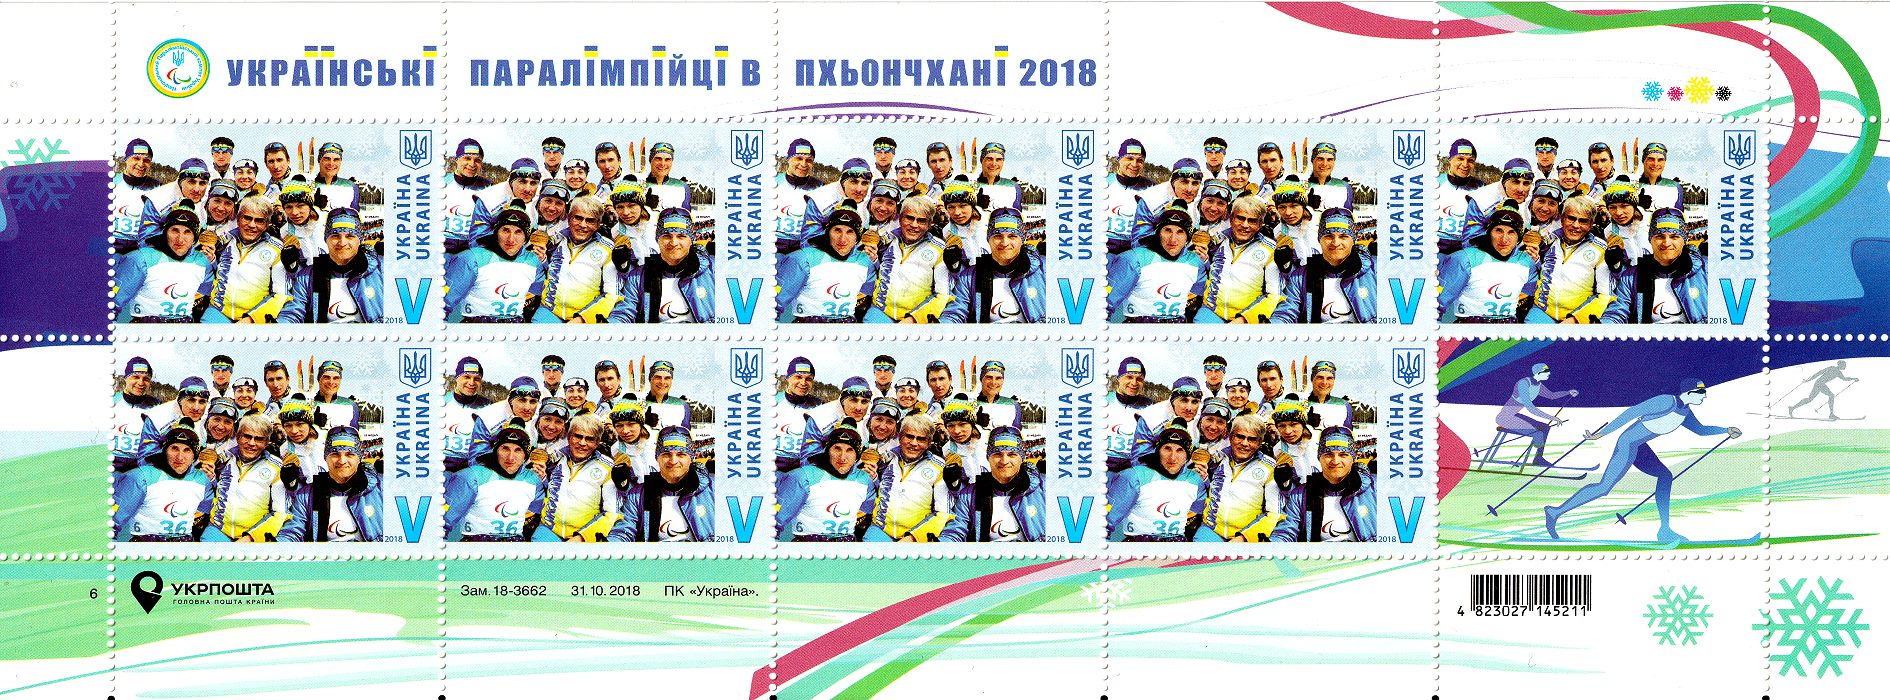 stamp-2018-olympics-paralympic